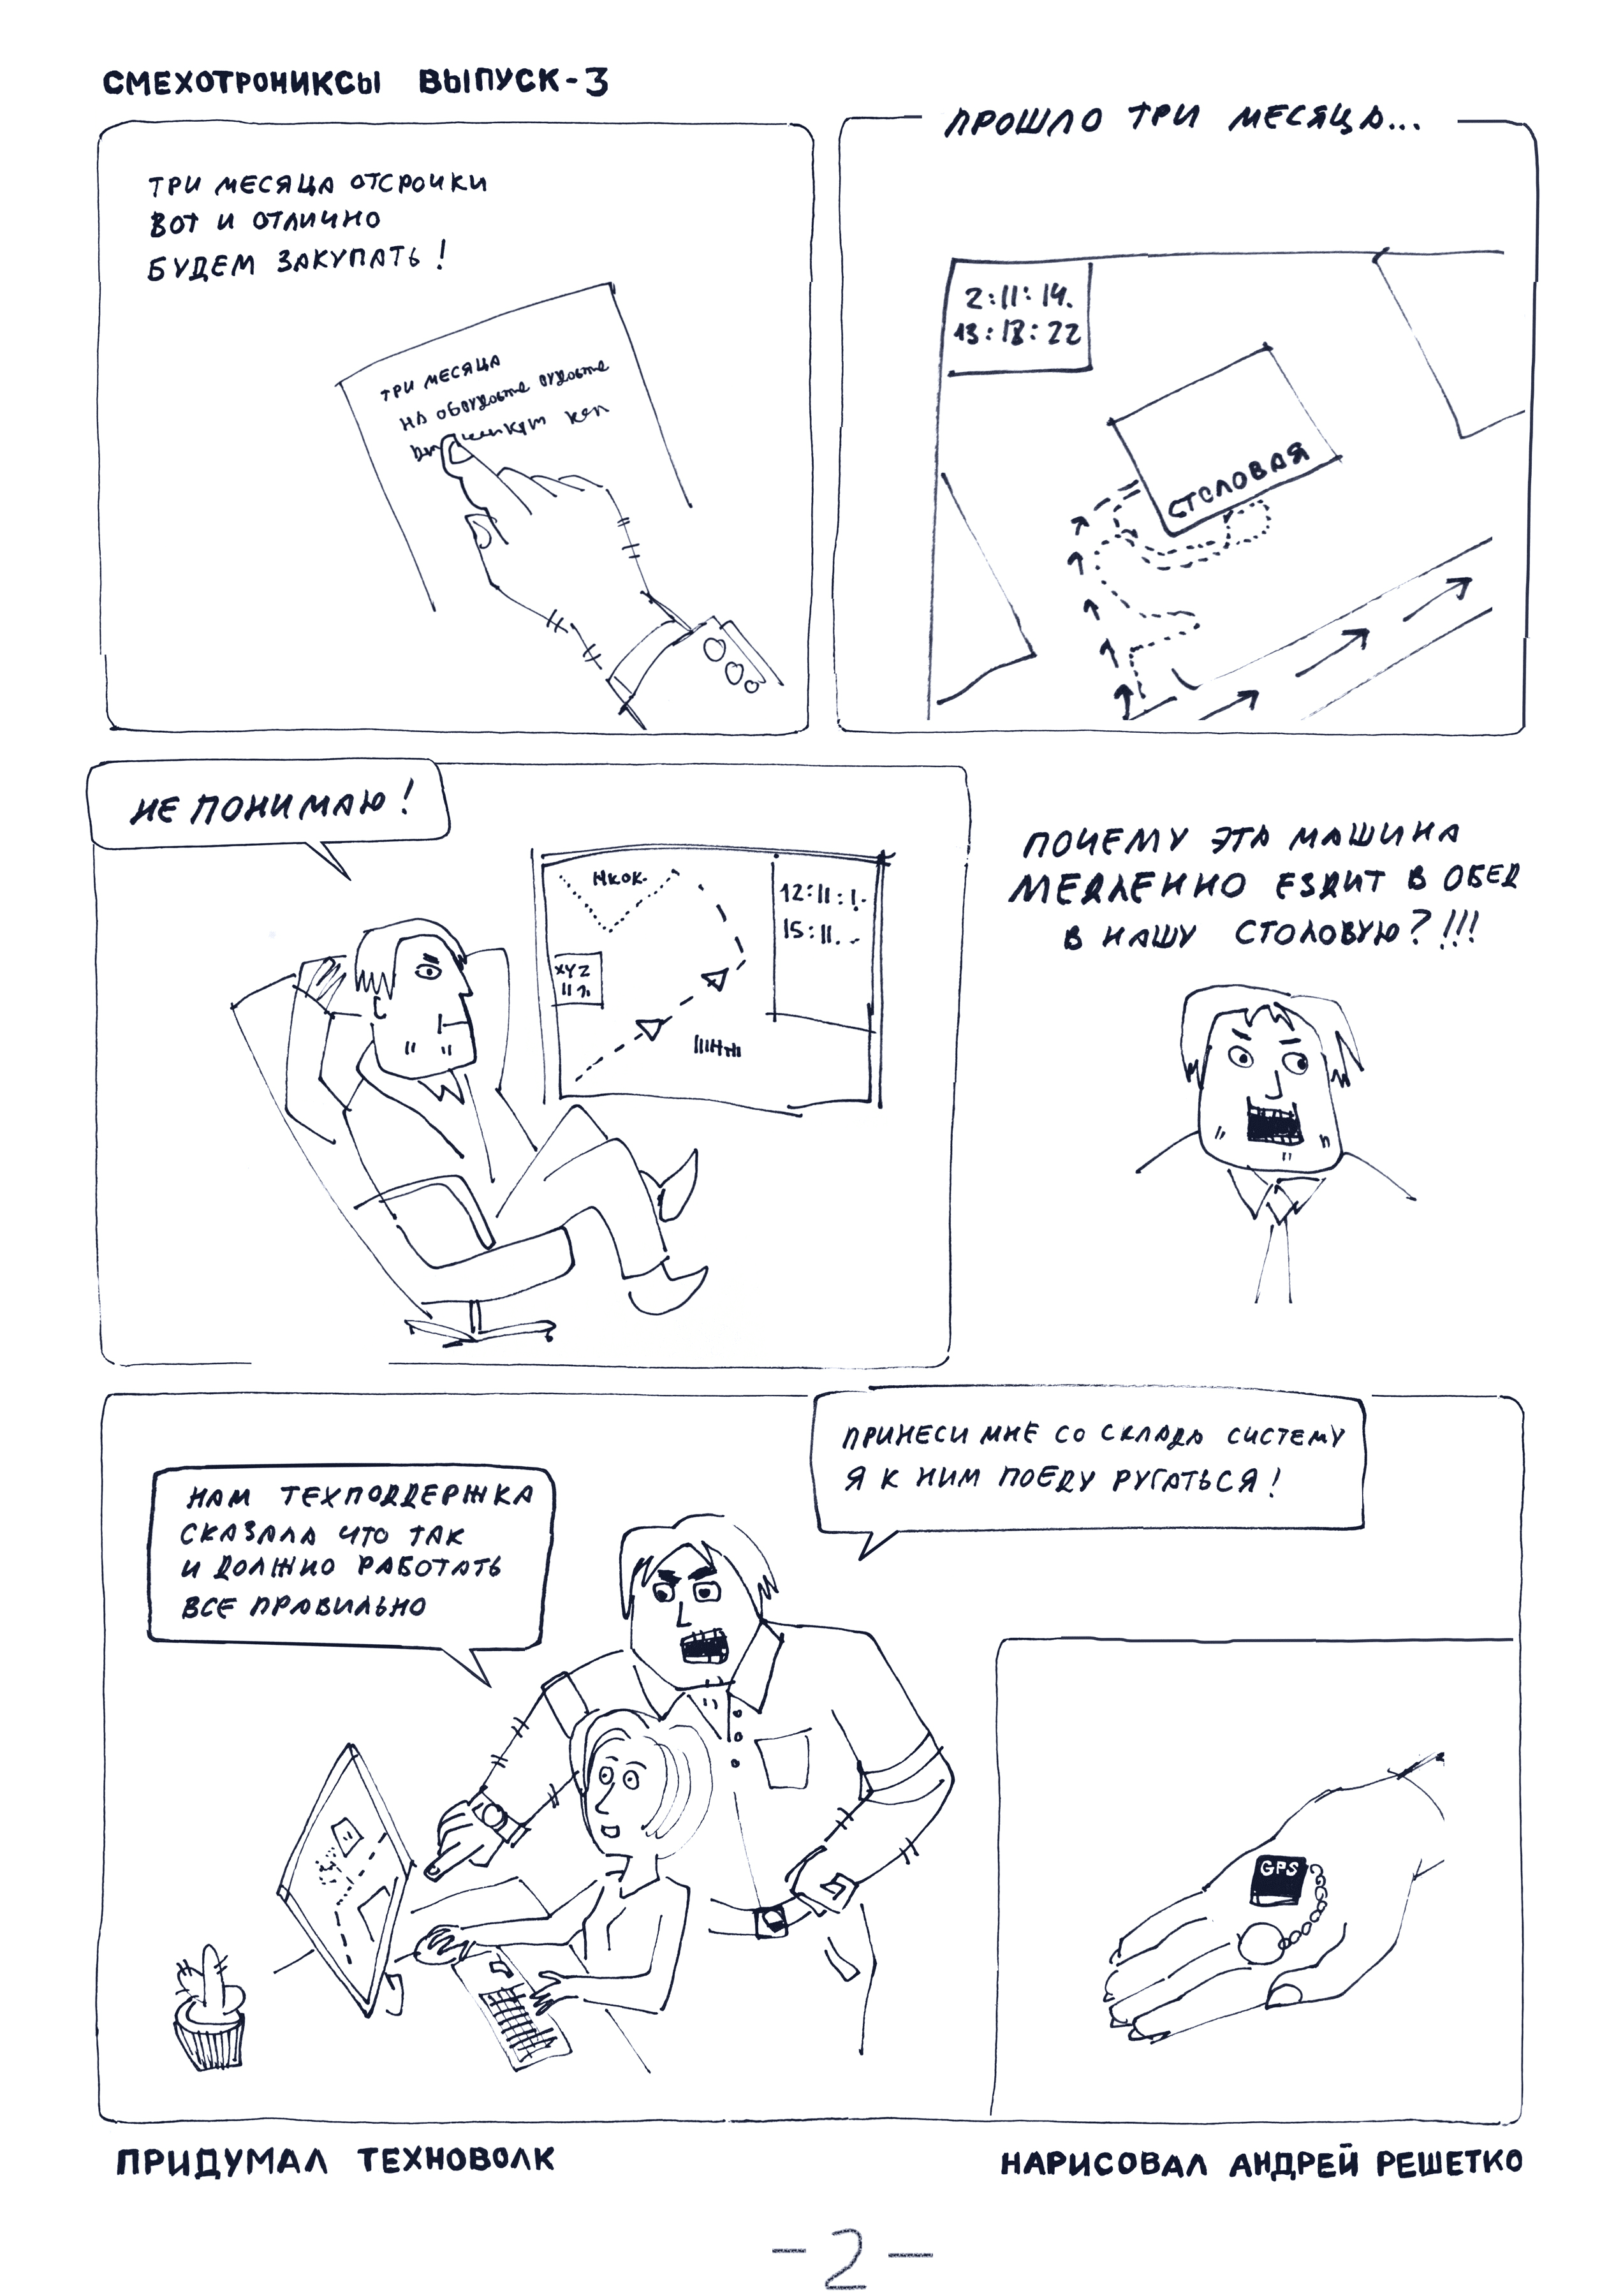 http://mechatronics.by/wp-content/uploads/2017/03/comix3_2.png